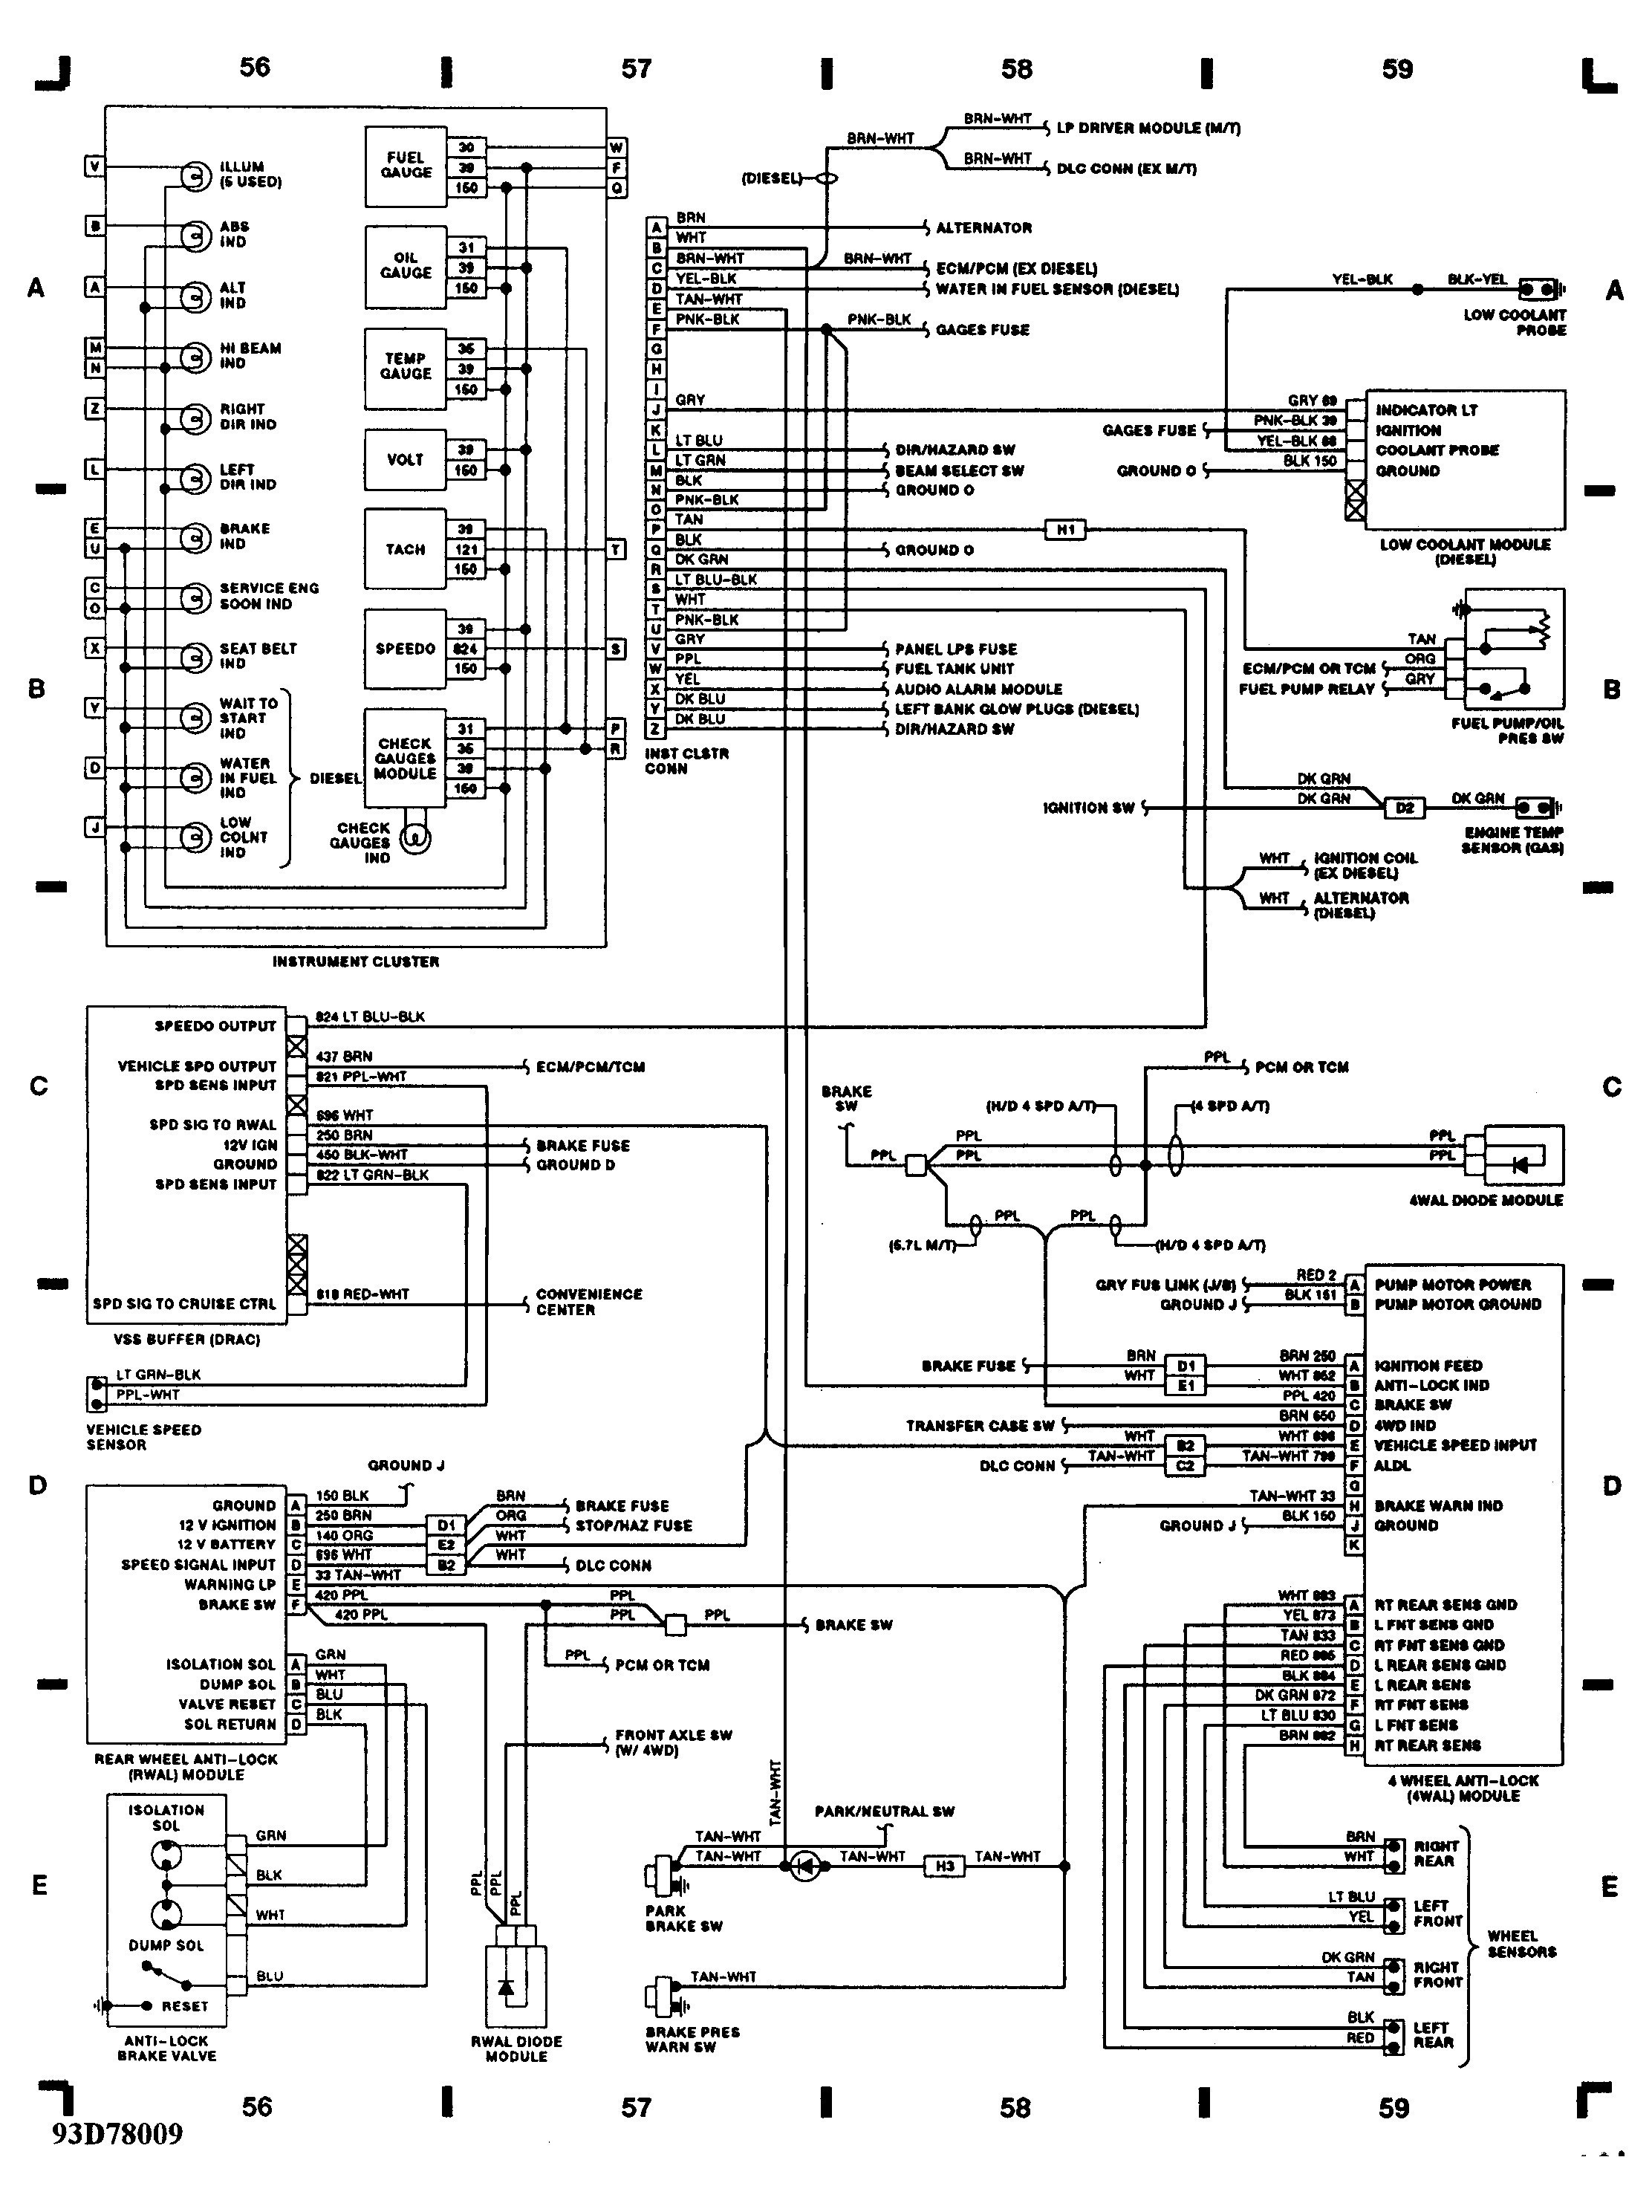 1993 Chevy Silverado Wiring Diagram Vs Toyota Best 2018 Iq Beautiful I Have A 93 With